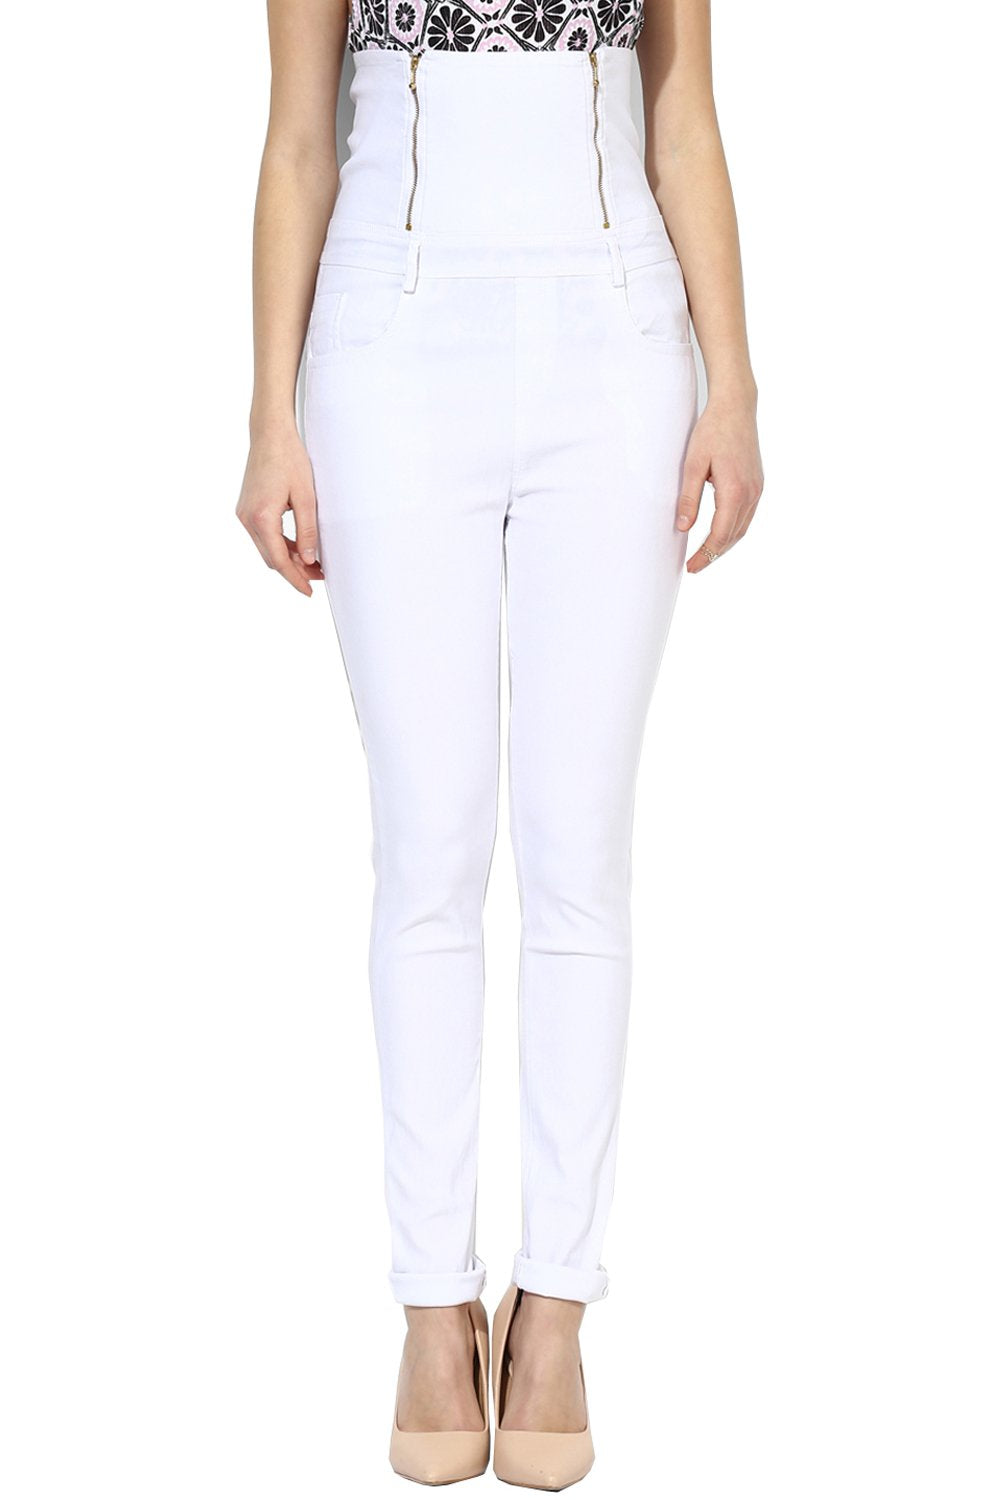 Castle White High Waist Jegging